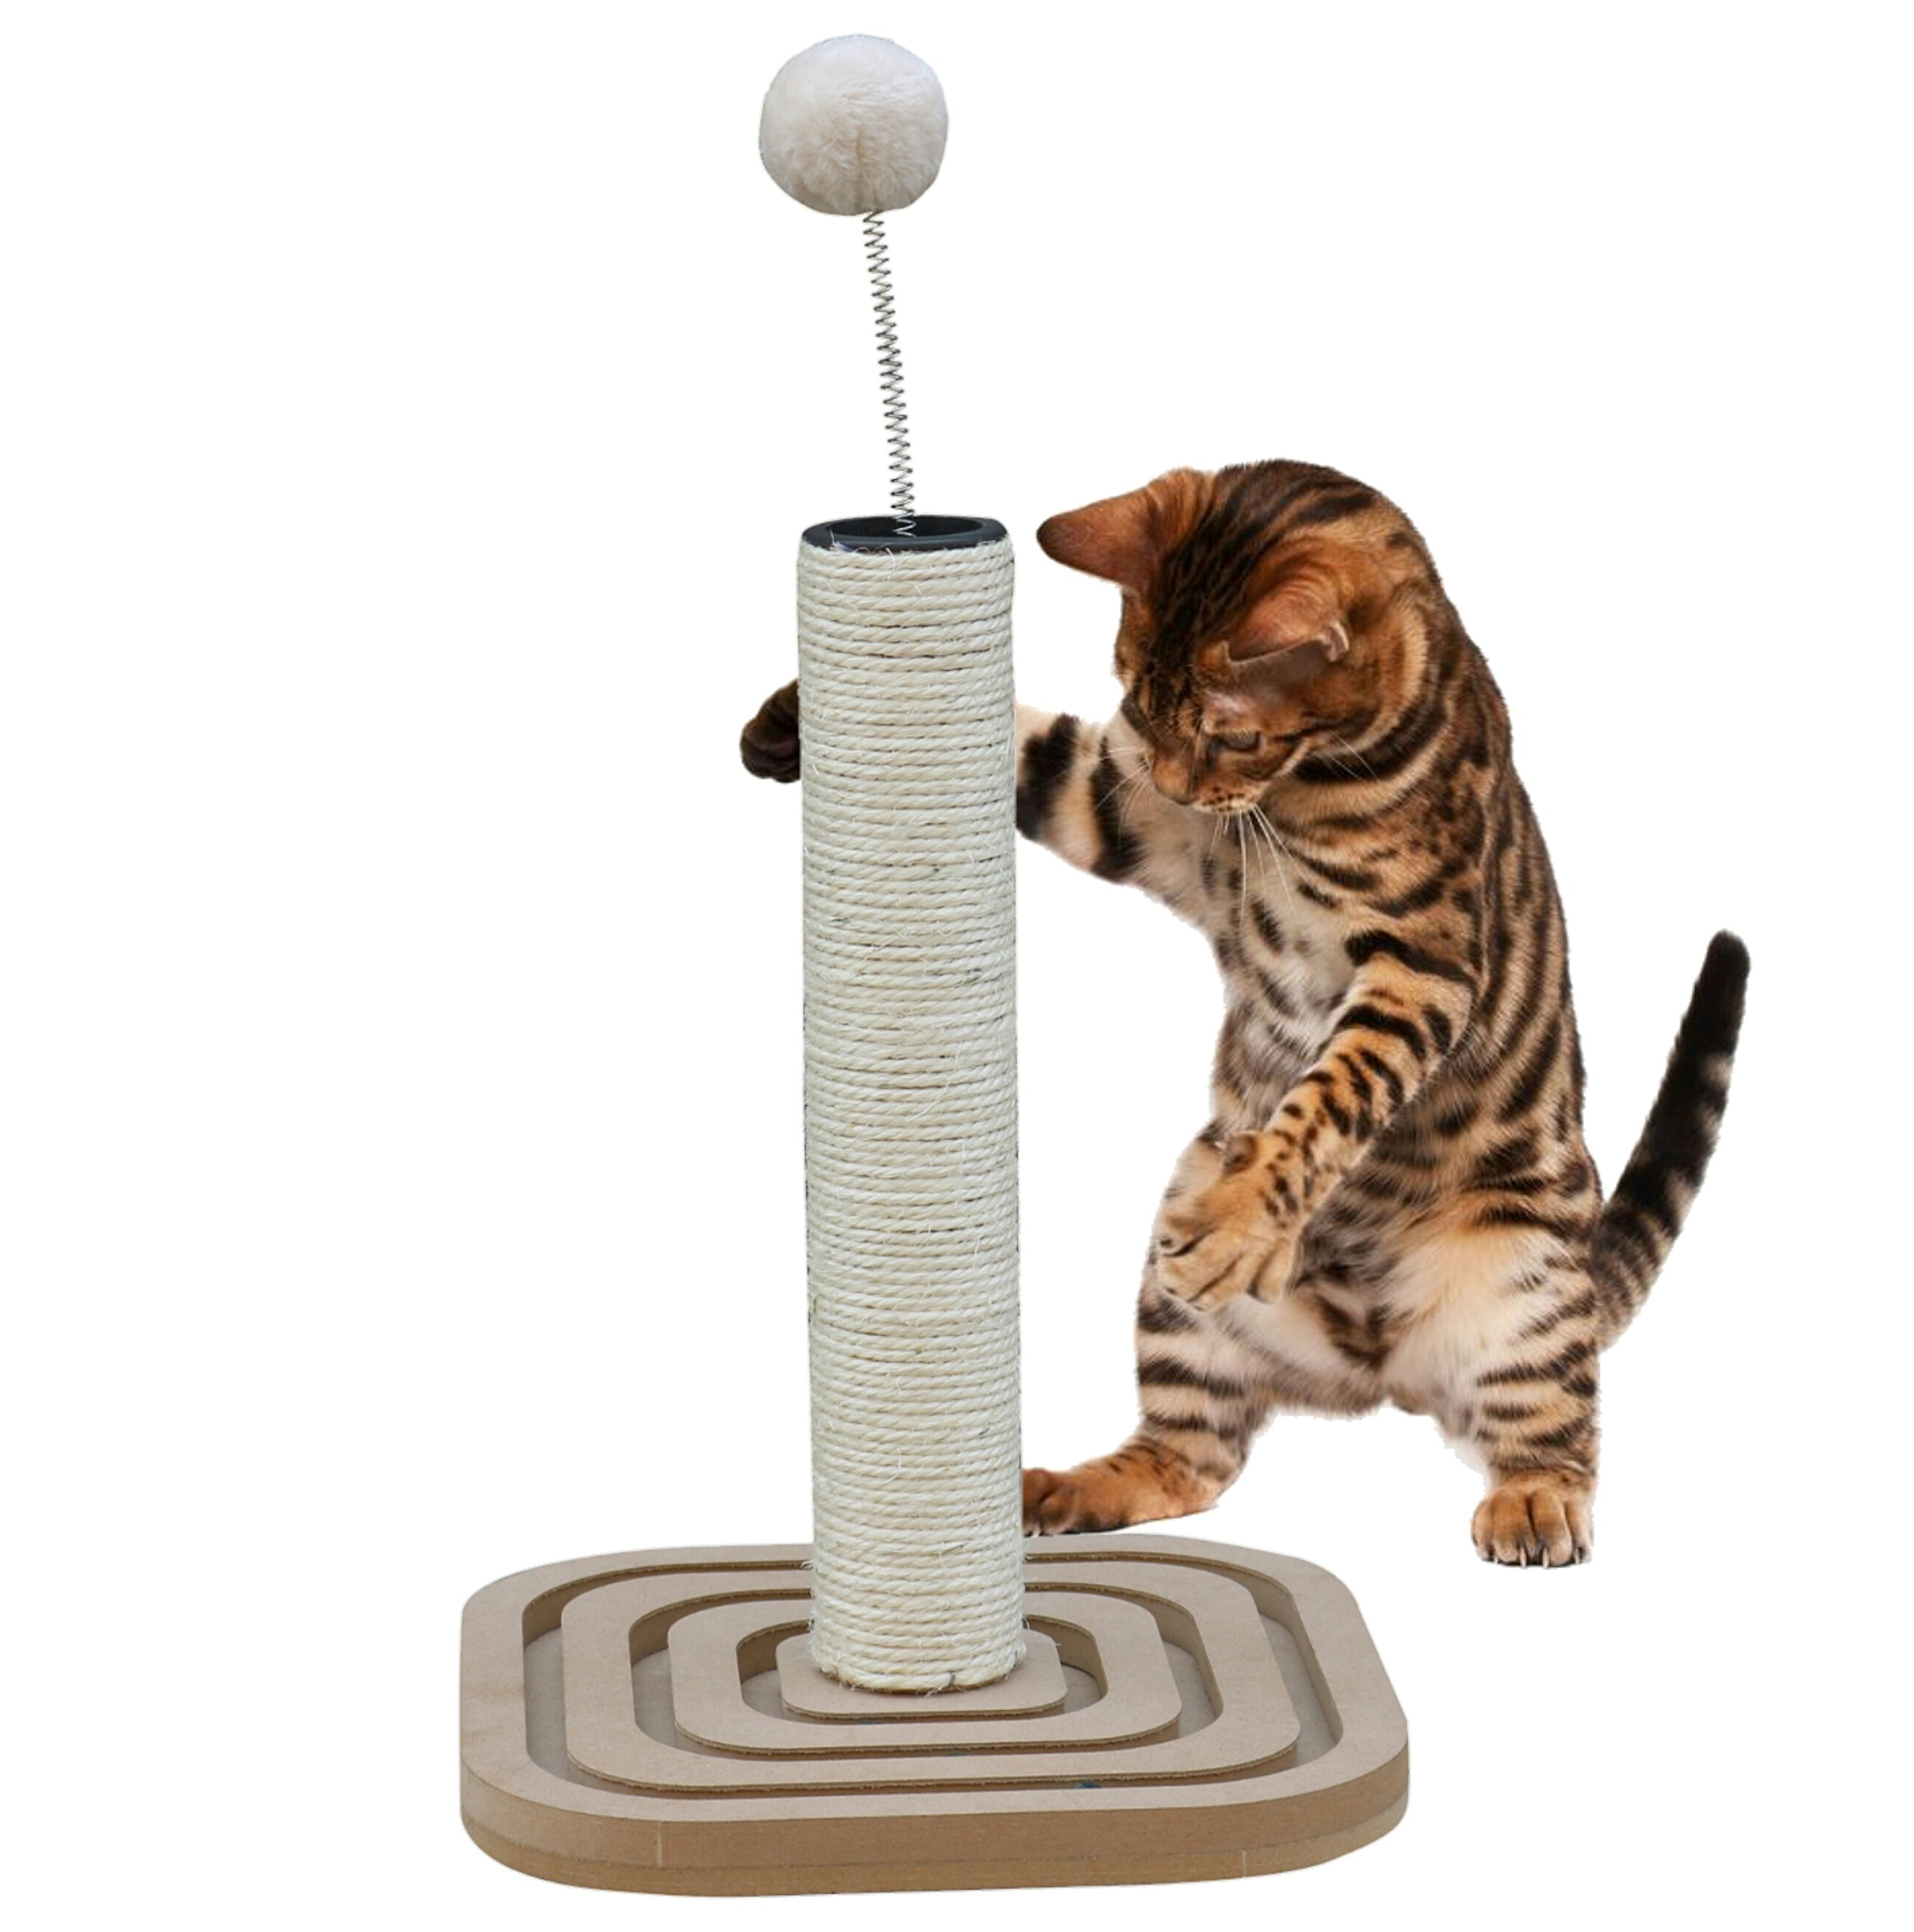 Mr. Peanut's Couch Saver Premium Cat Scratching Post with Built In Interactive Marbles - Durable Sisal Material Keeps Kitten Claws Active & Protects Your Furniture - Includes Interactive Marbles